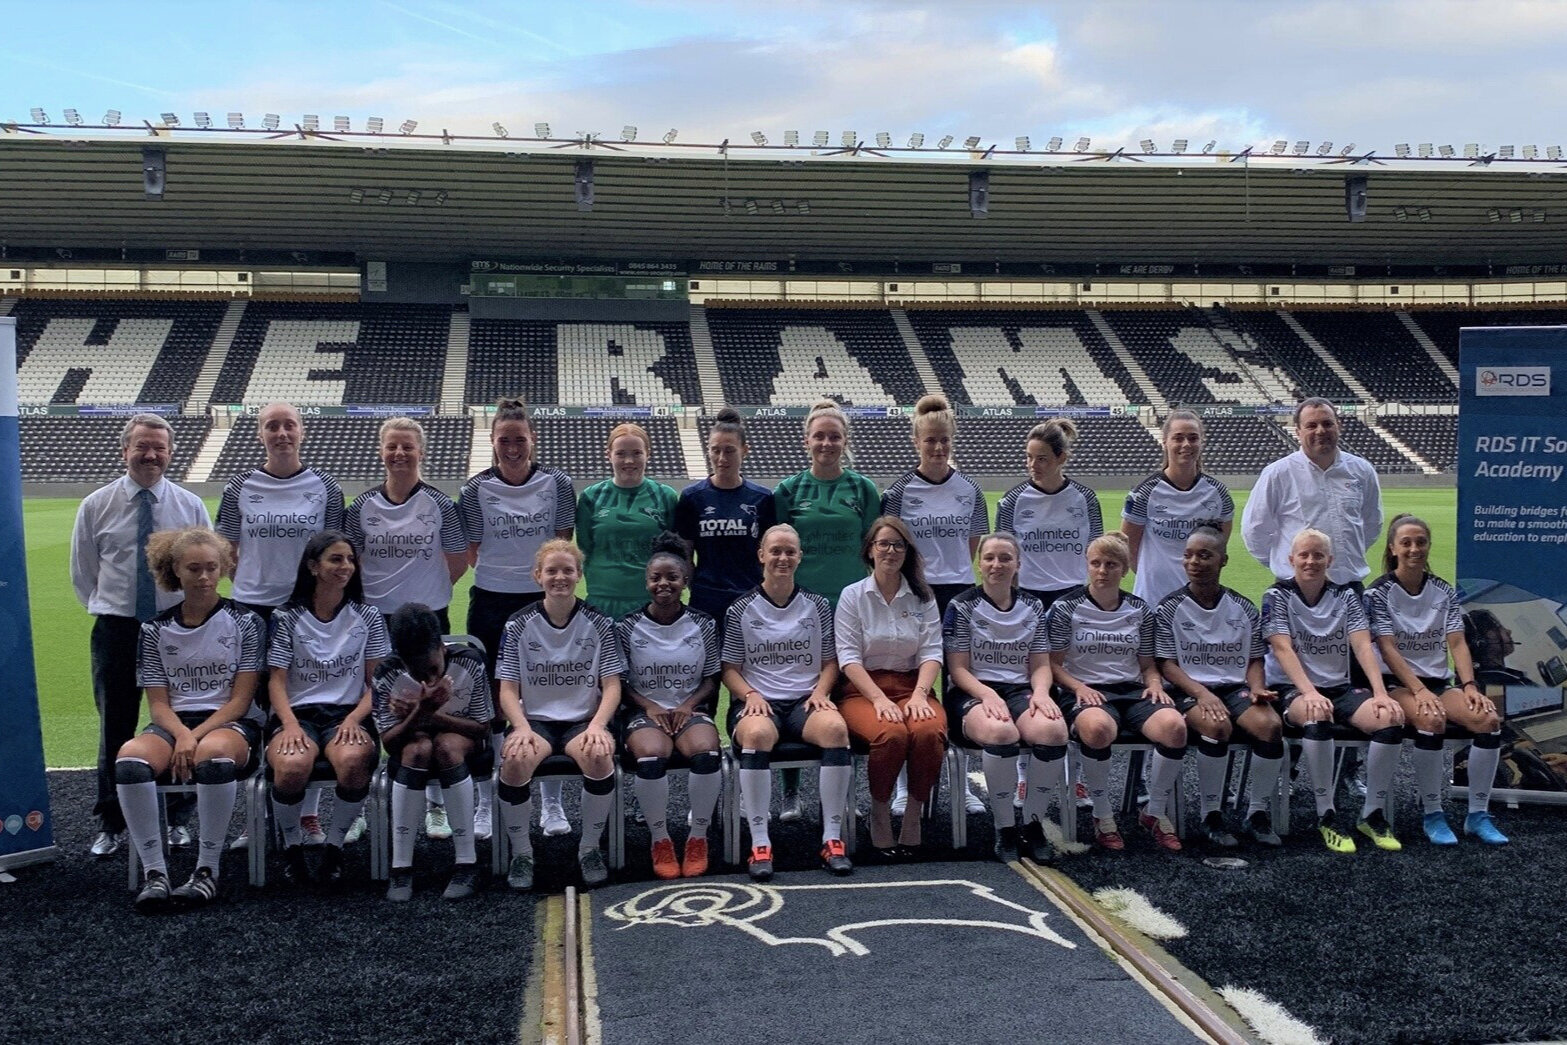 Supporting Gender Equality. - In 2016, RDS sponsored the Derby County FC Ladies U9's team and in 2018, were the proud media partner of the DCFC Ladies team. These sponsorships are indicative of the recent investment that RDS Global has made in supporting gender equality. Other support includes encouraging more women into technology jobs through our IT Academy and the sponsorship of the Women in Sports award at the Derby Telegraph Sports Awards in 2018.